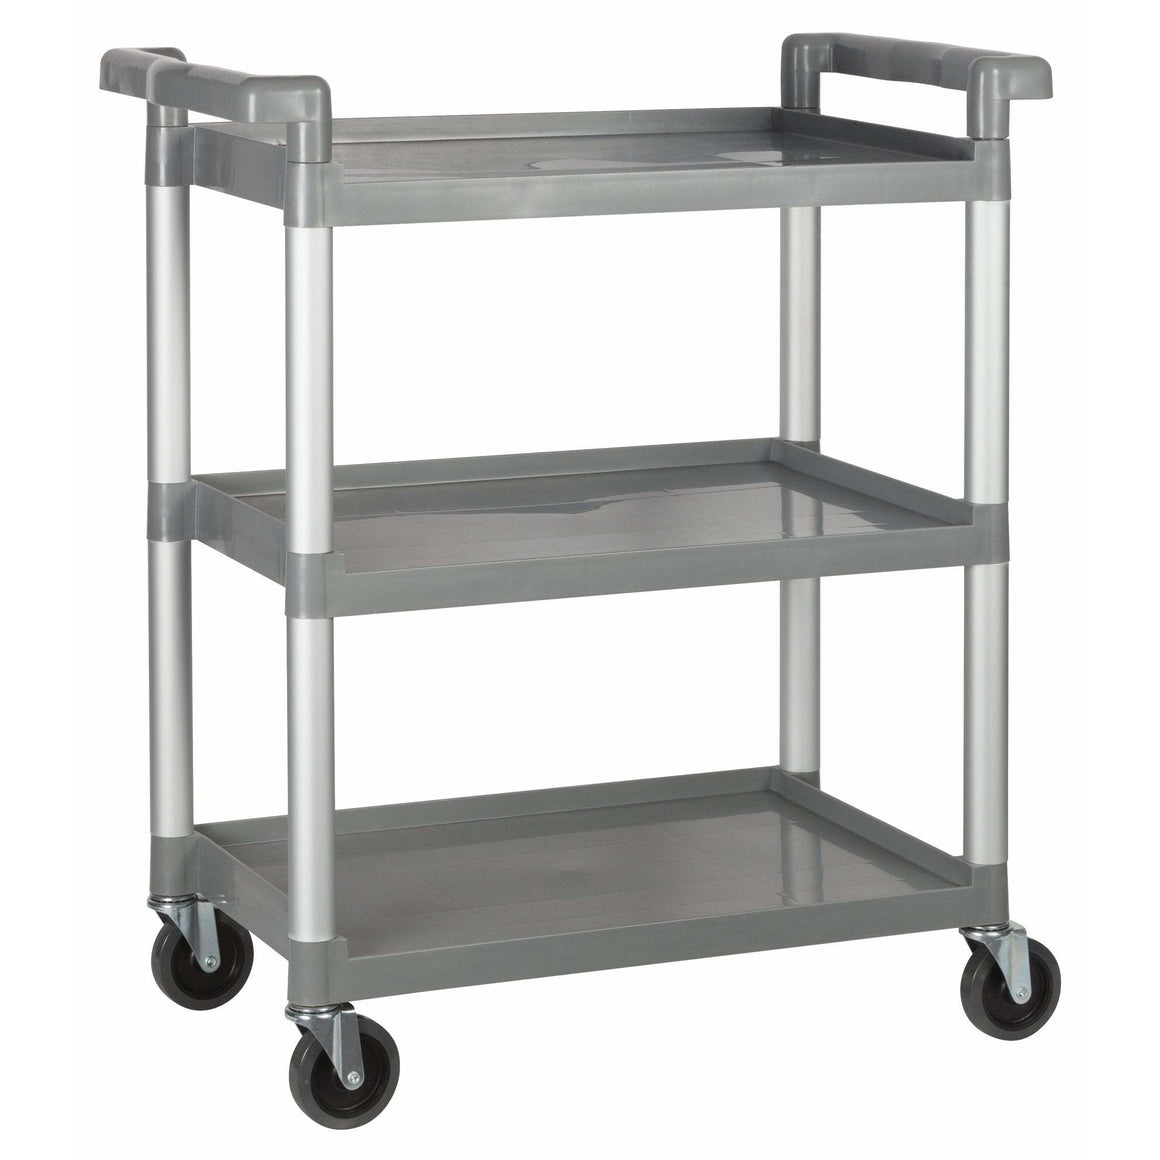 "Winco - UC-2415G - Plastic Utility Cart, 32""L x 16-1/8""W x 36-3/4""H, 3 Tier, Gray - Bussing - Maltese & Co New and Used  restaurant Equipment"